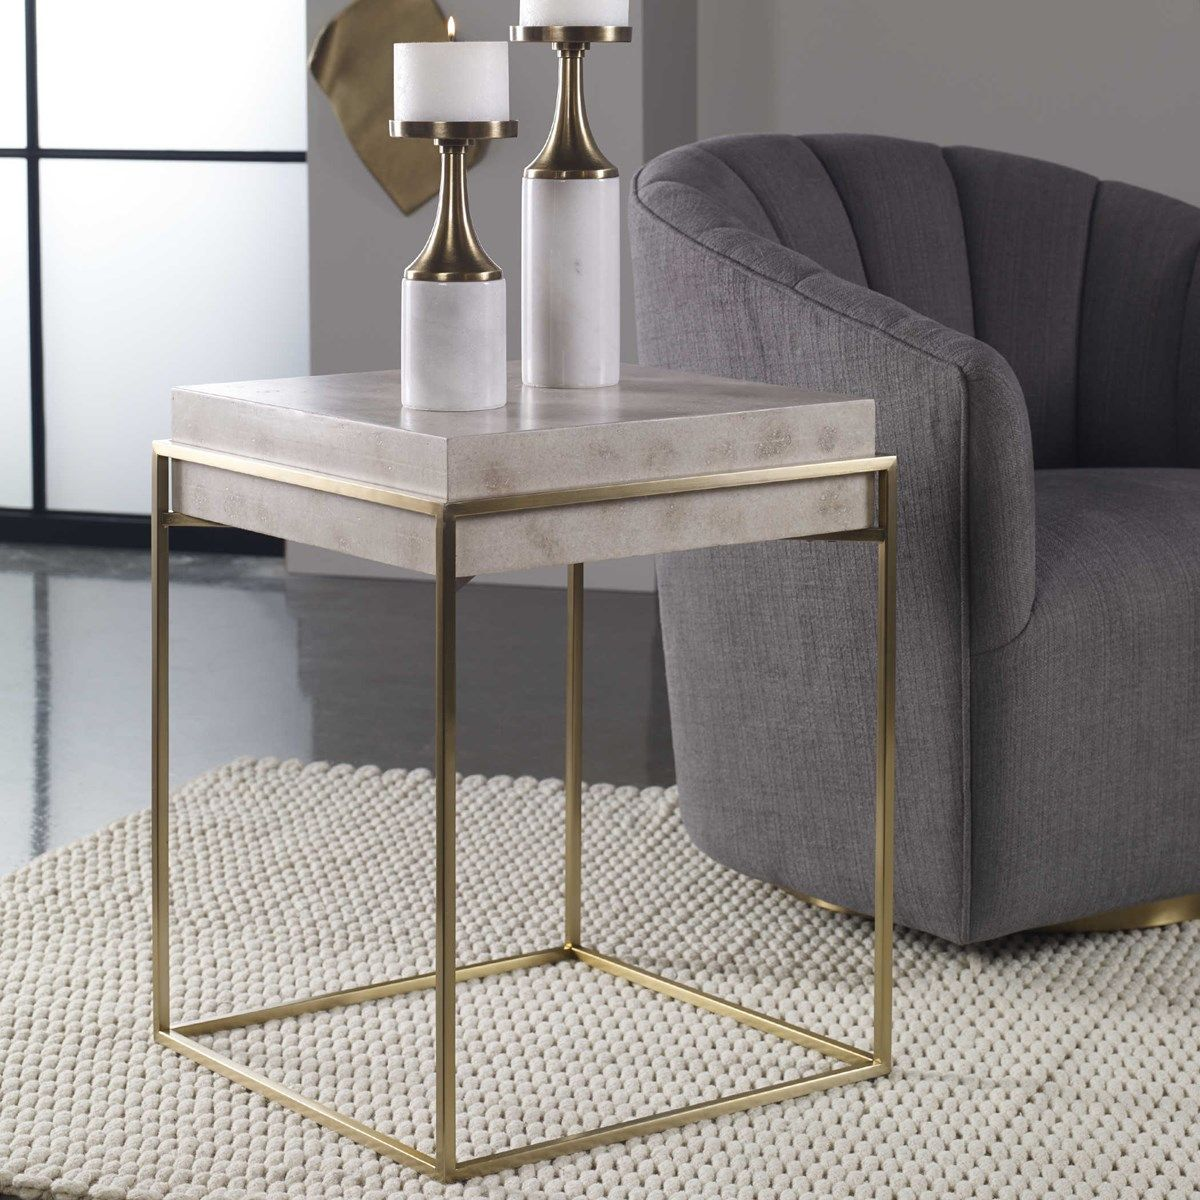 Inda Accent Table Uttermost Modern Accent Tables Accent Table Square Accent Tables Modern accent tables for living room